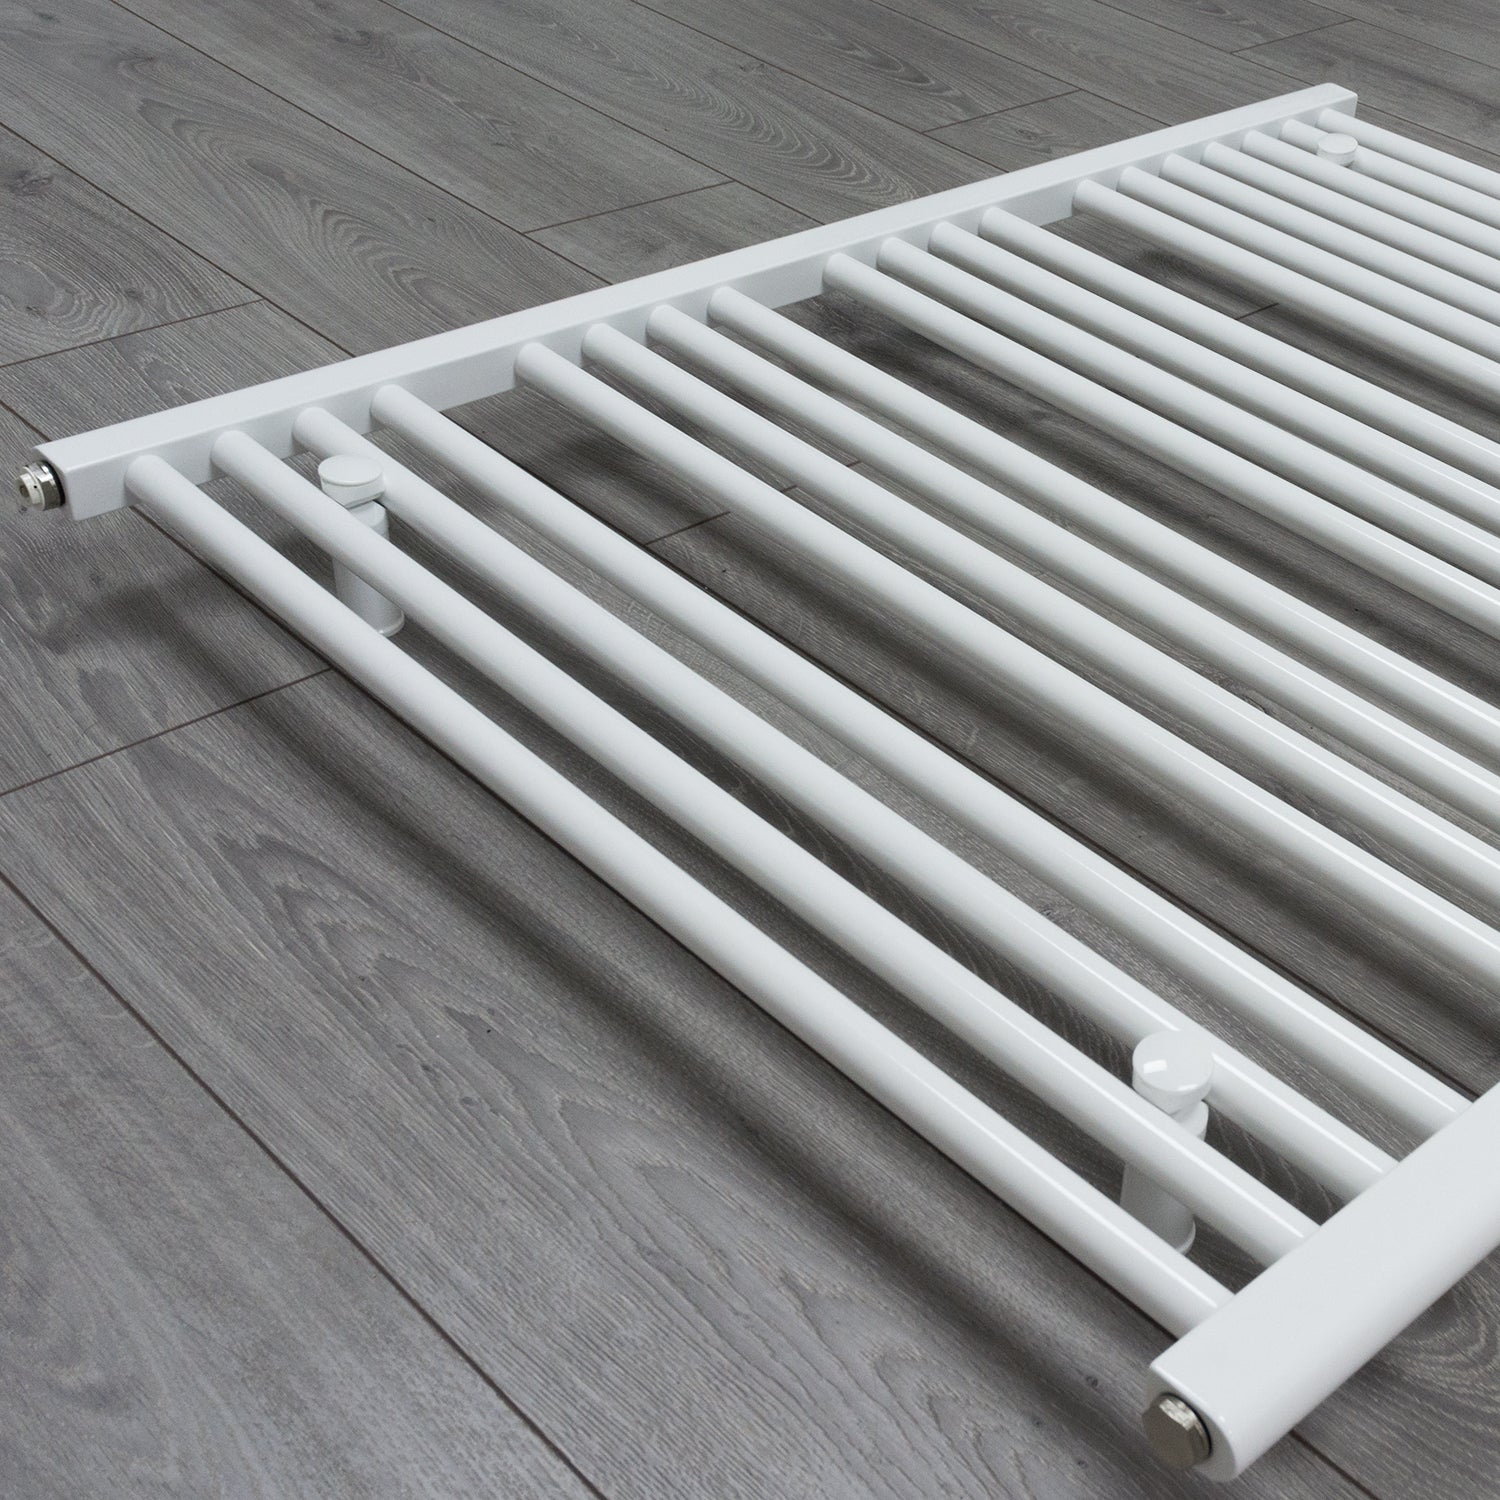 750mm x 1300mm White Heated Towel Rail Radiator Close Up Image